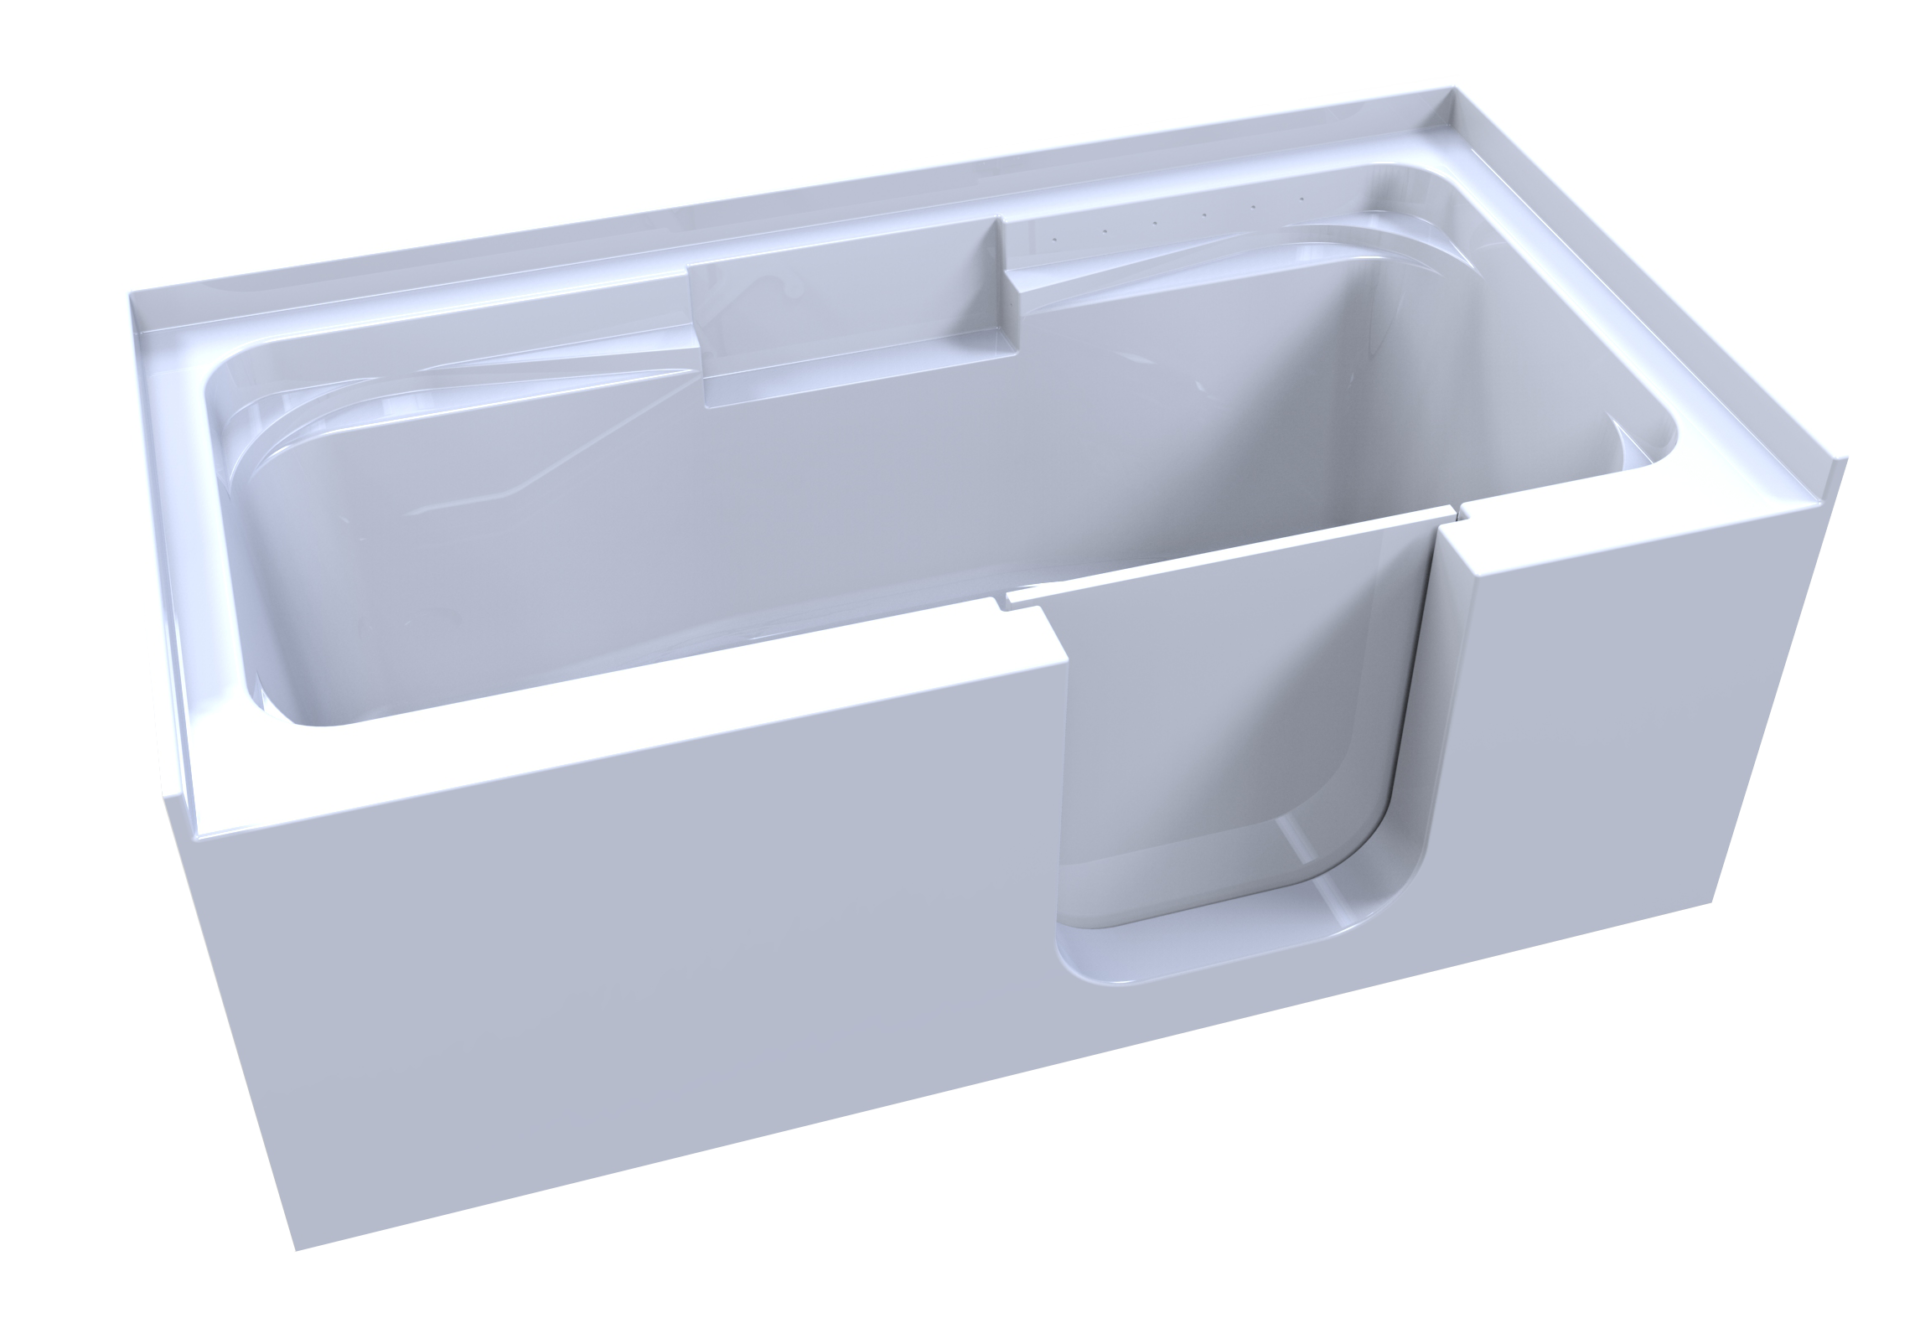 3d model of so-lo style walk-in bathtub, no water